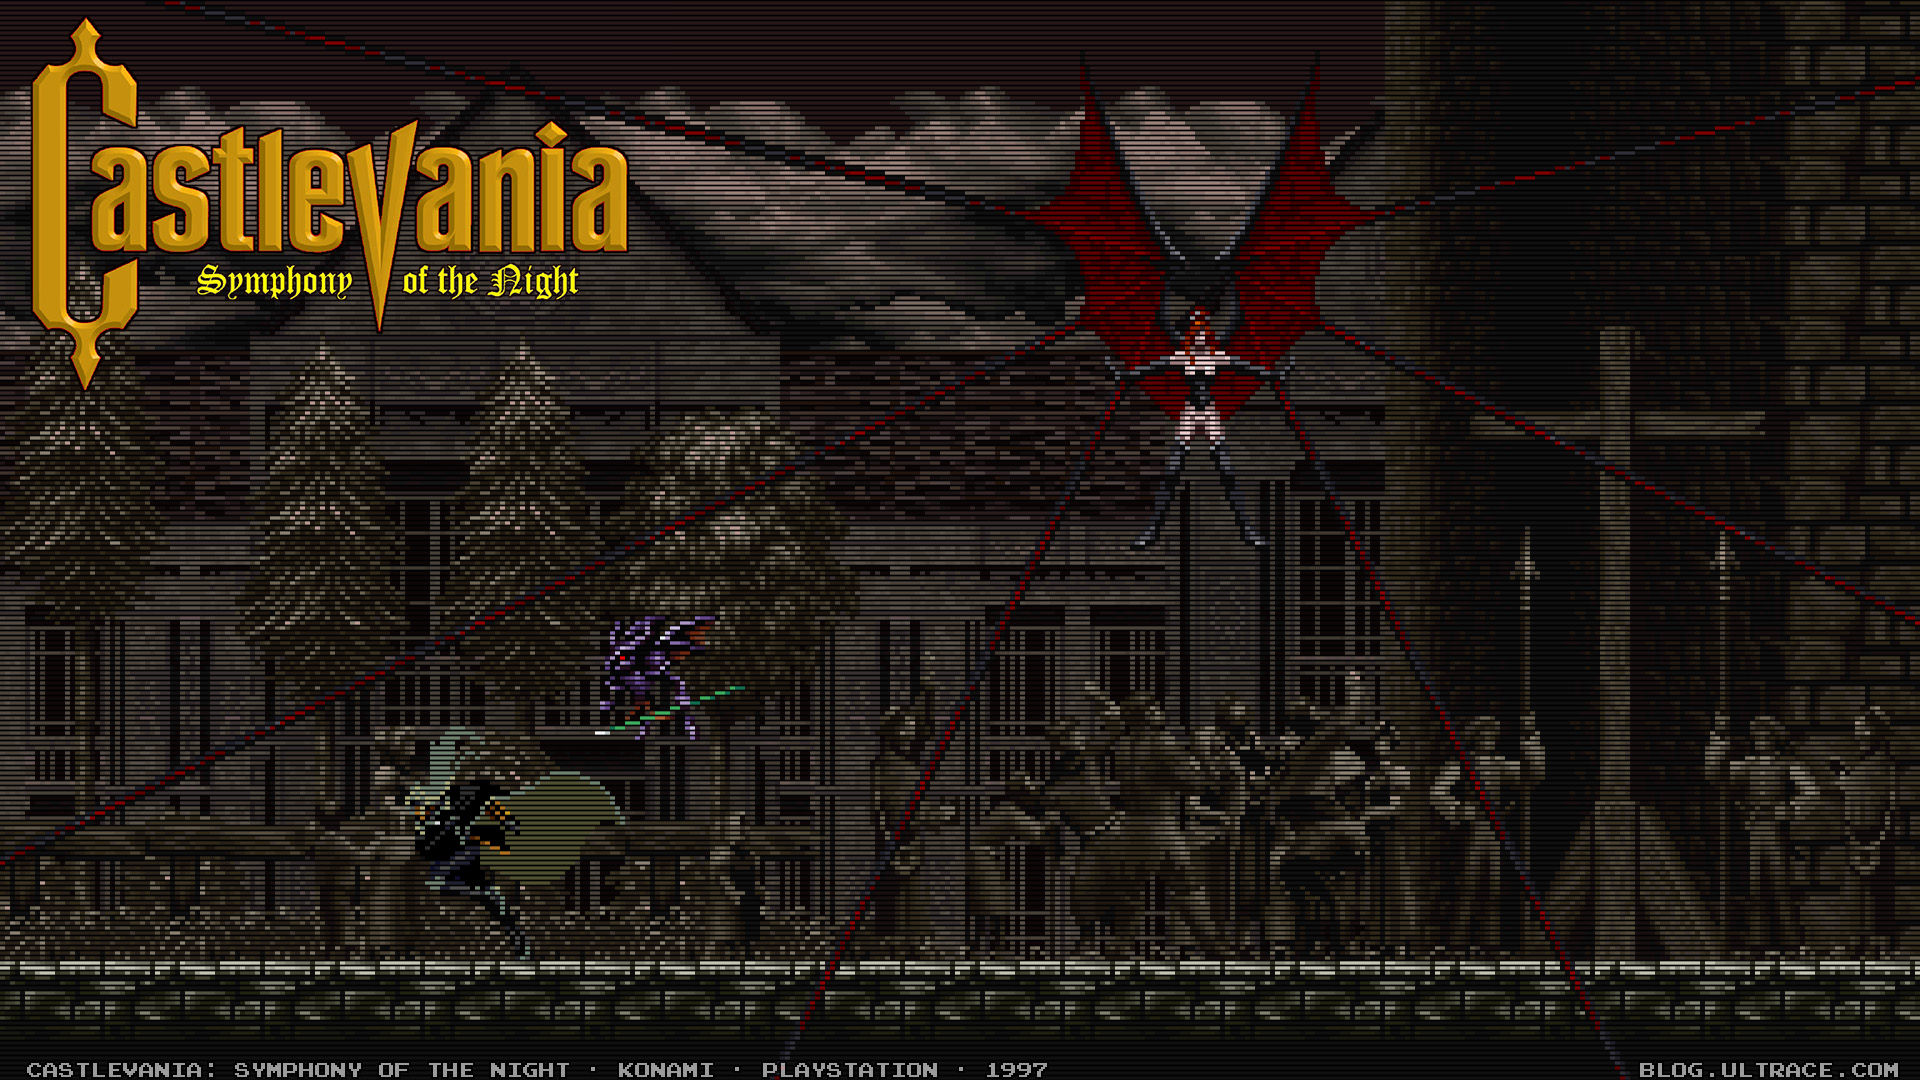 Castlevania Sotn Wallpaper Posted By Michelle Sellers